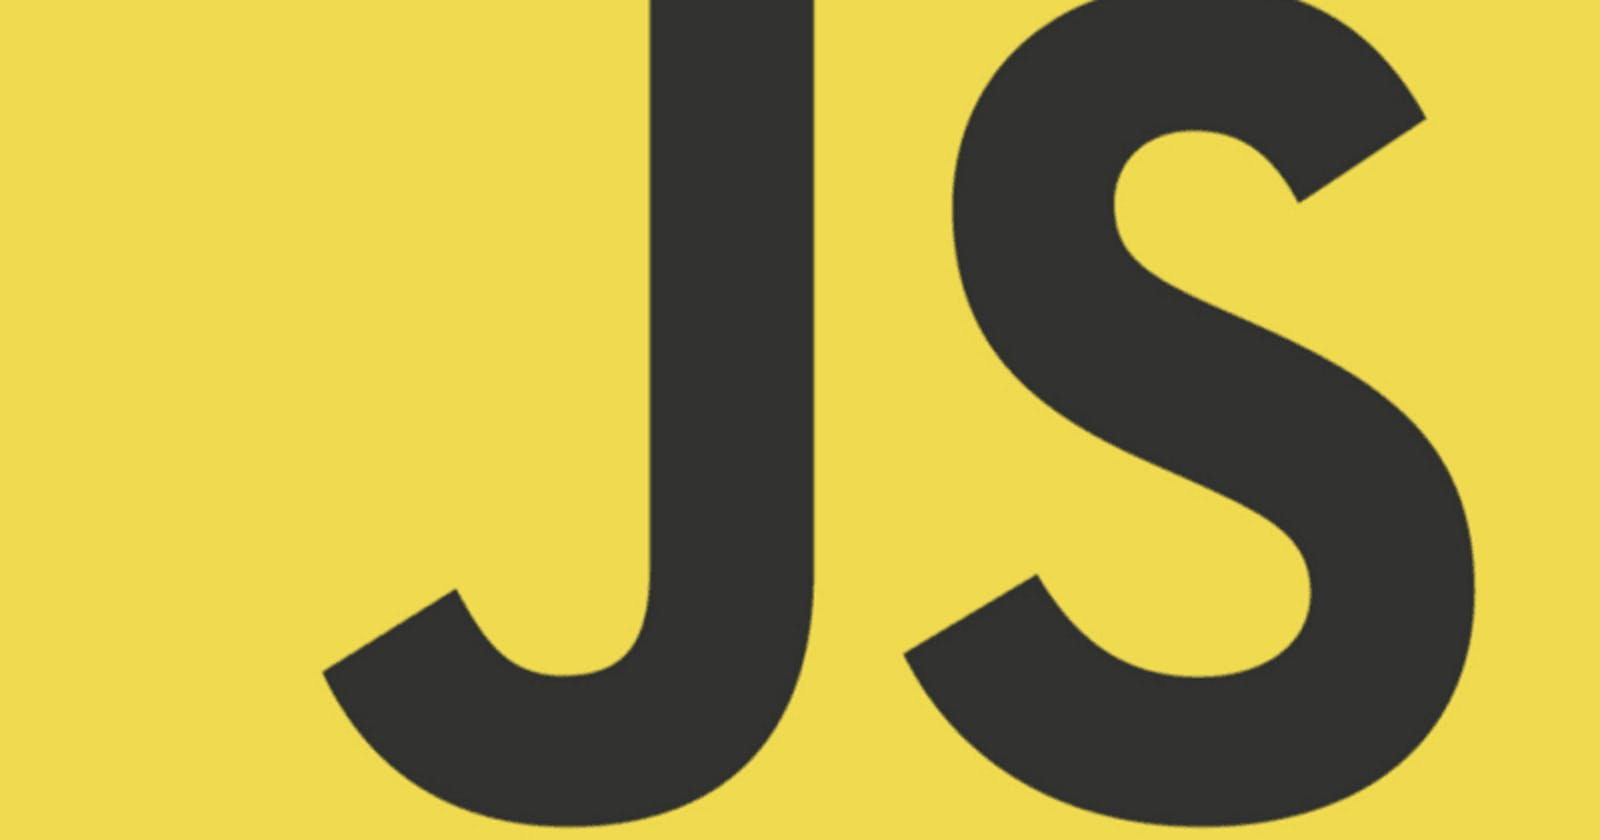 JS Spec debunking for toPrimitive on an object